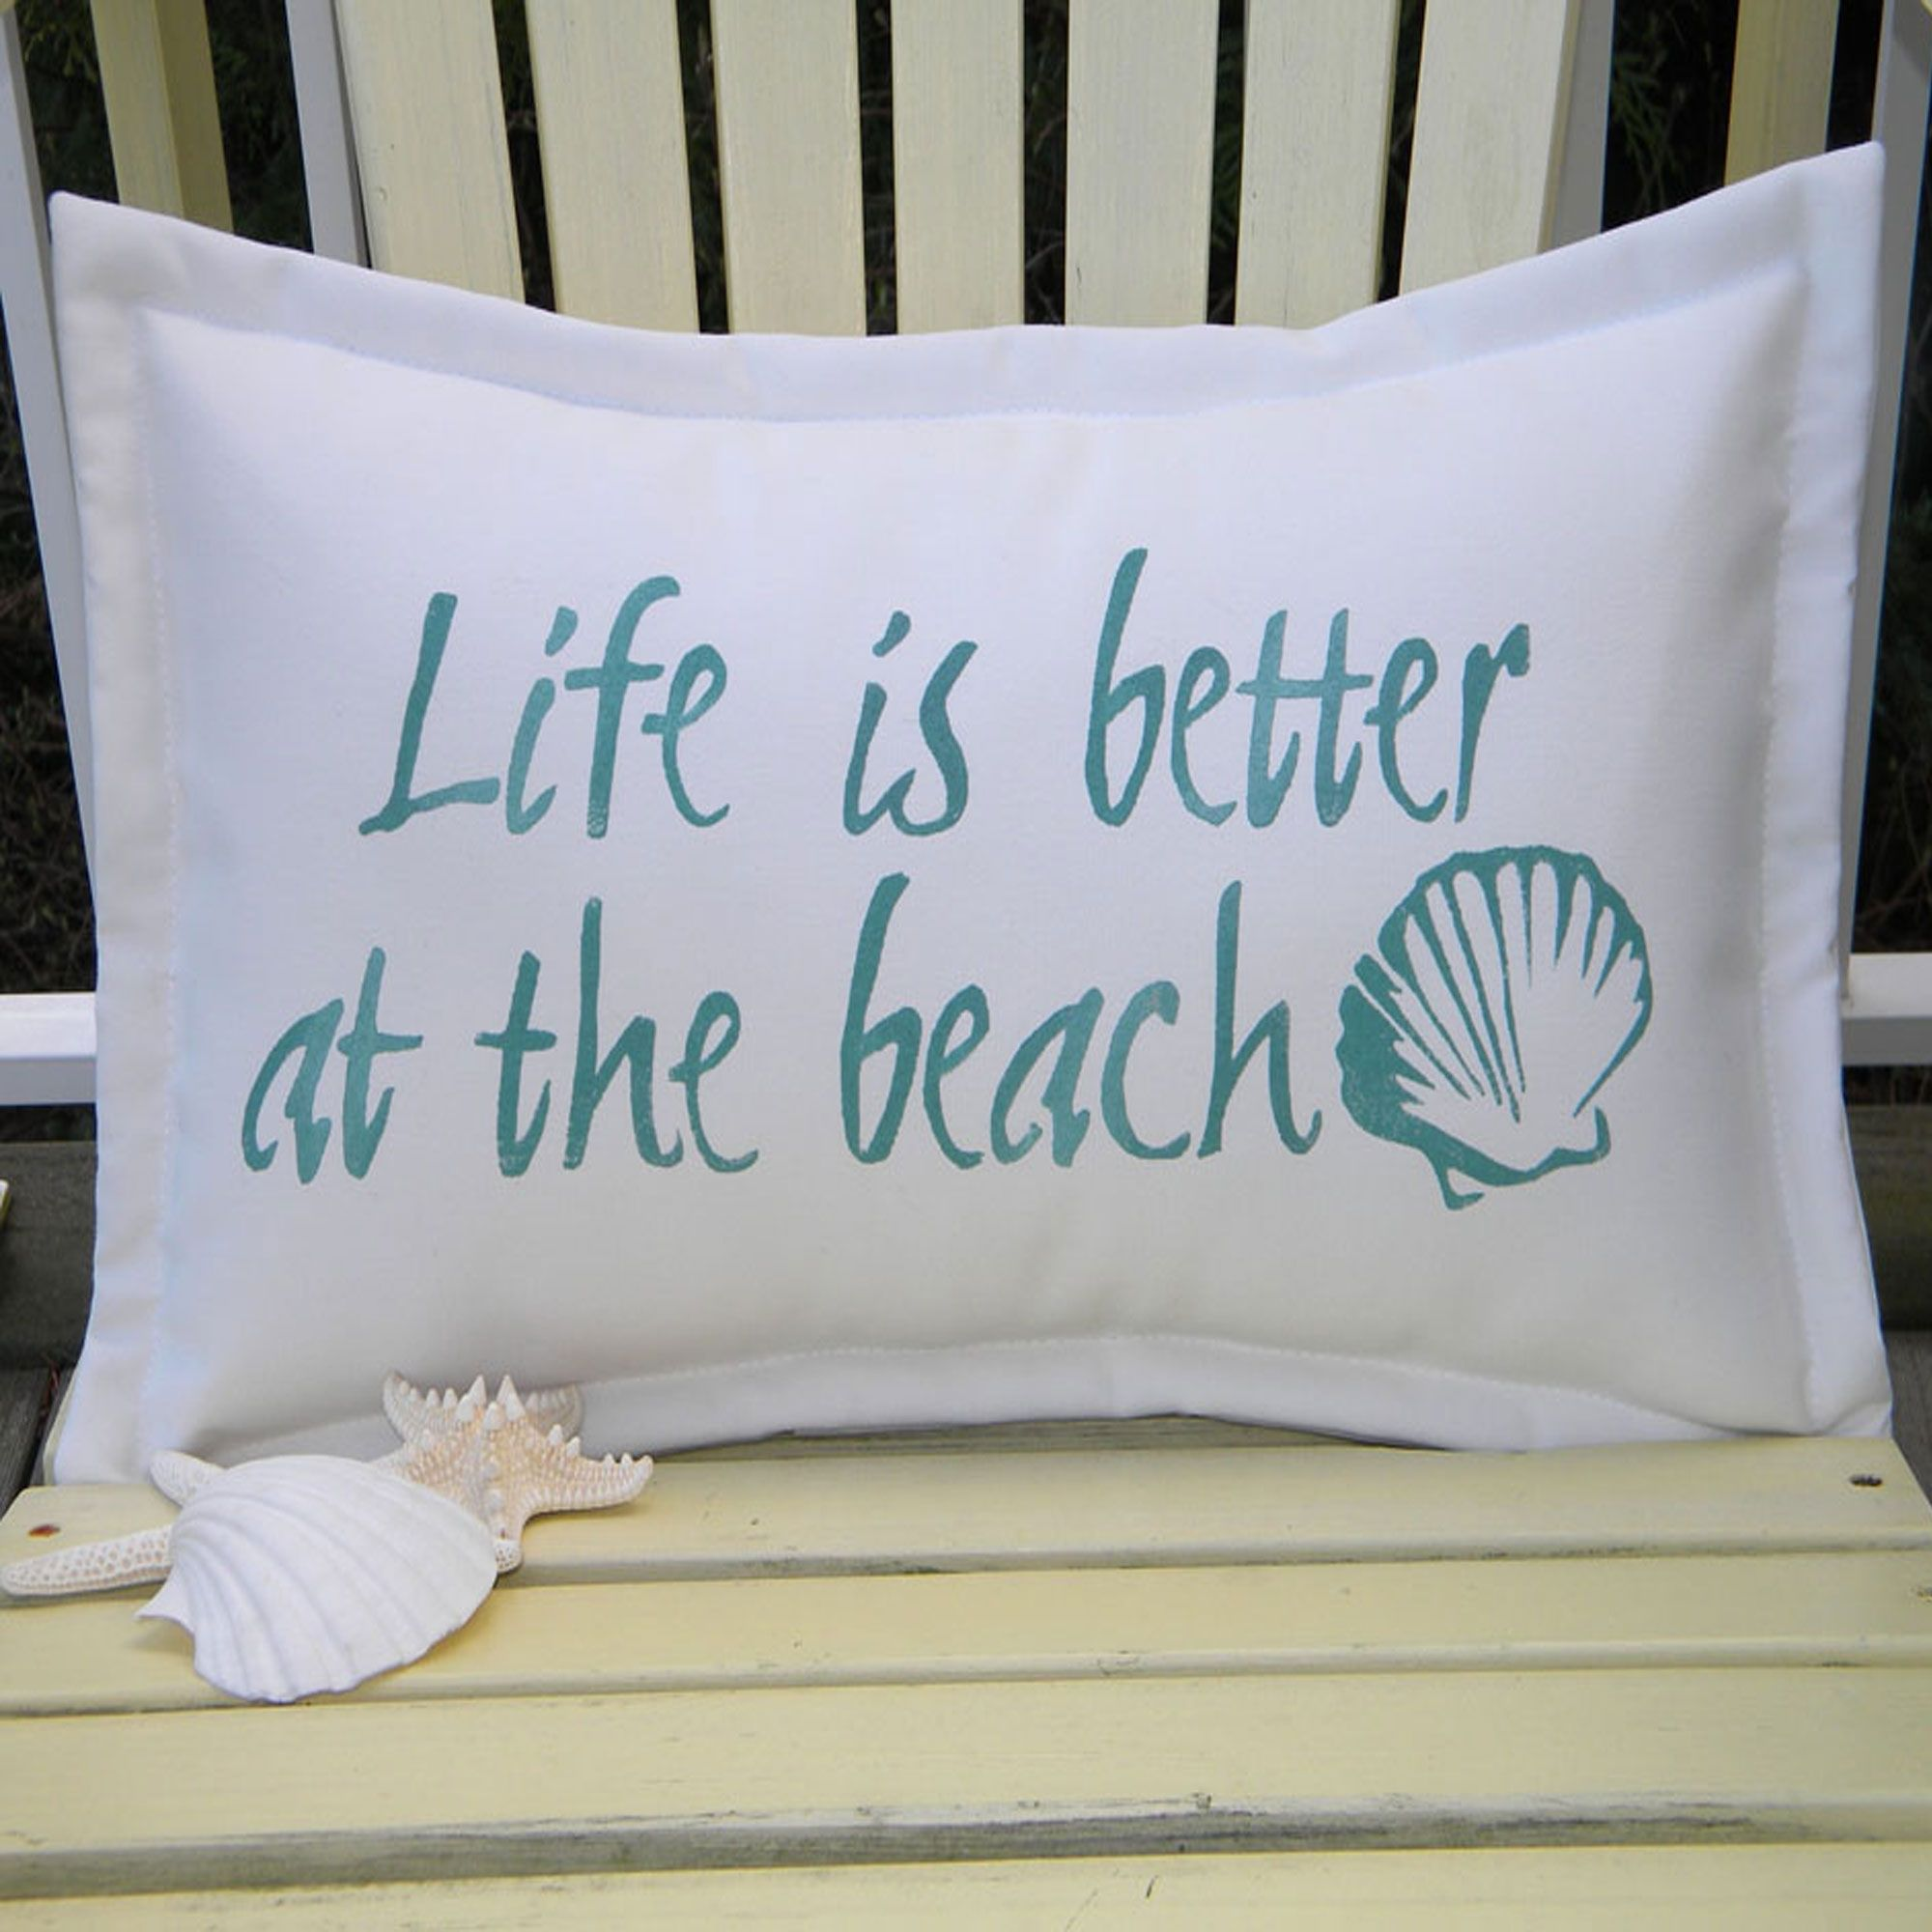 at teal the beach outdoor pillows artisans better seaside a life pillow pin is